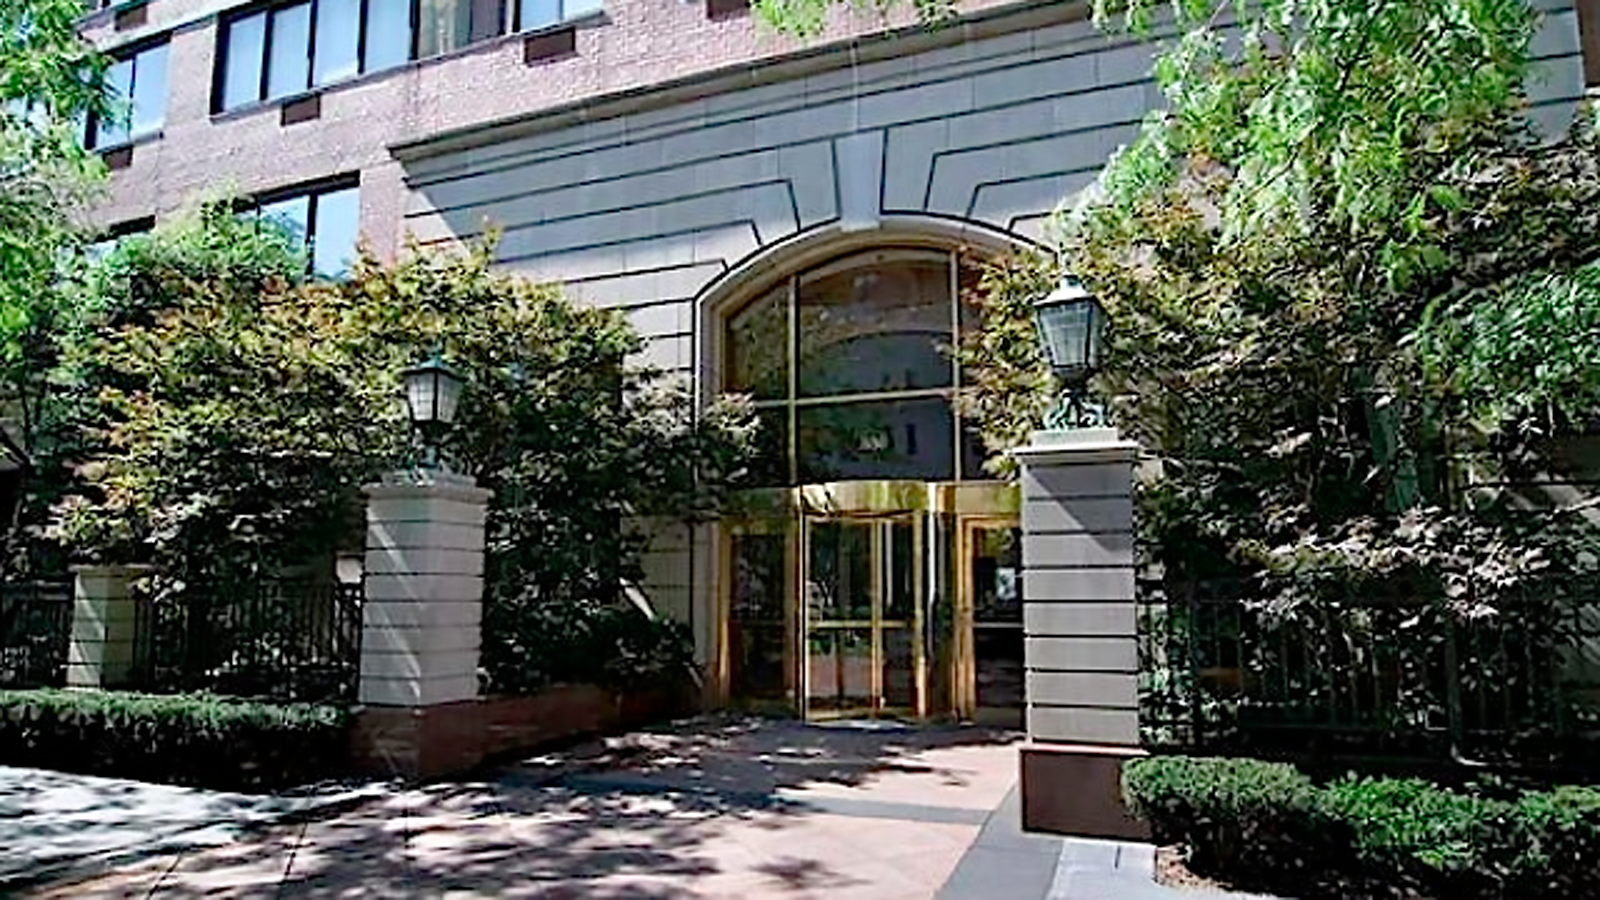 The Lucerne, 350 East 79th Street